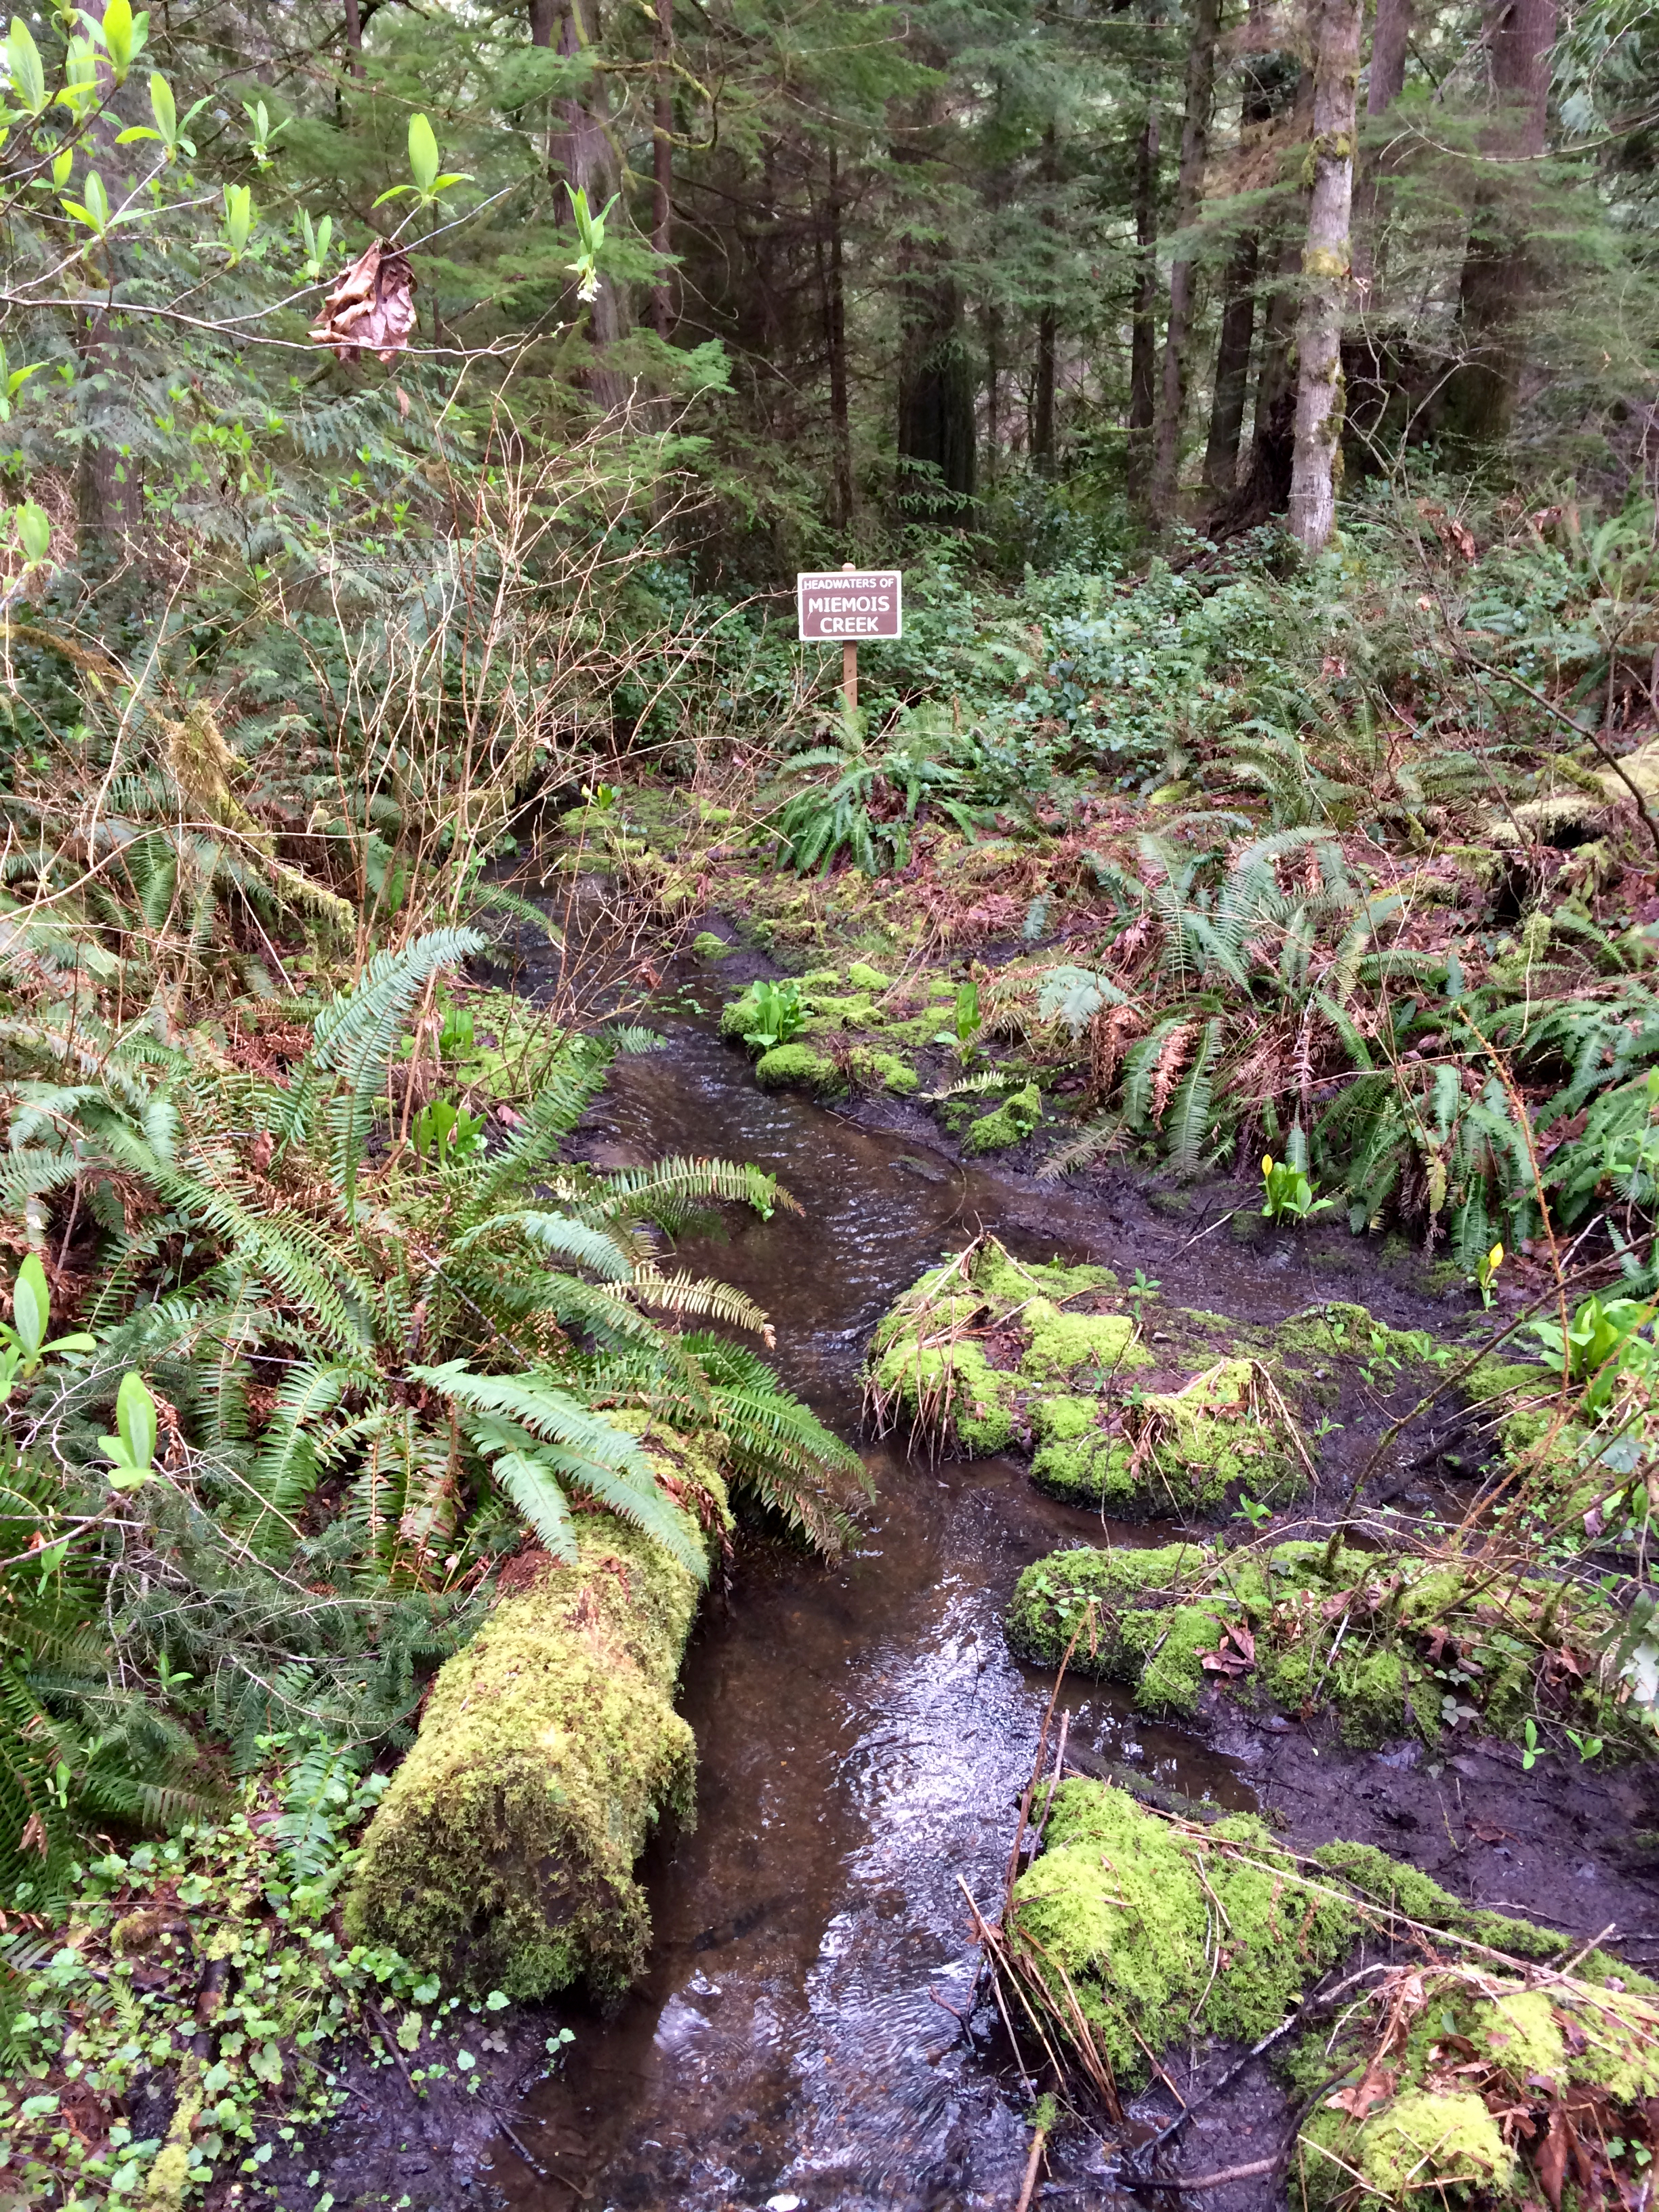 Miemois Creek, Grand Forest, Bainbridge Island